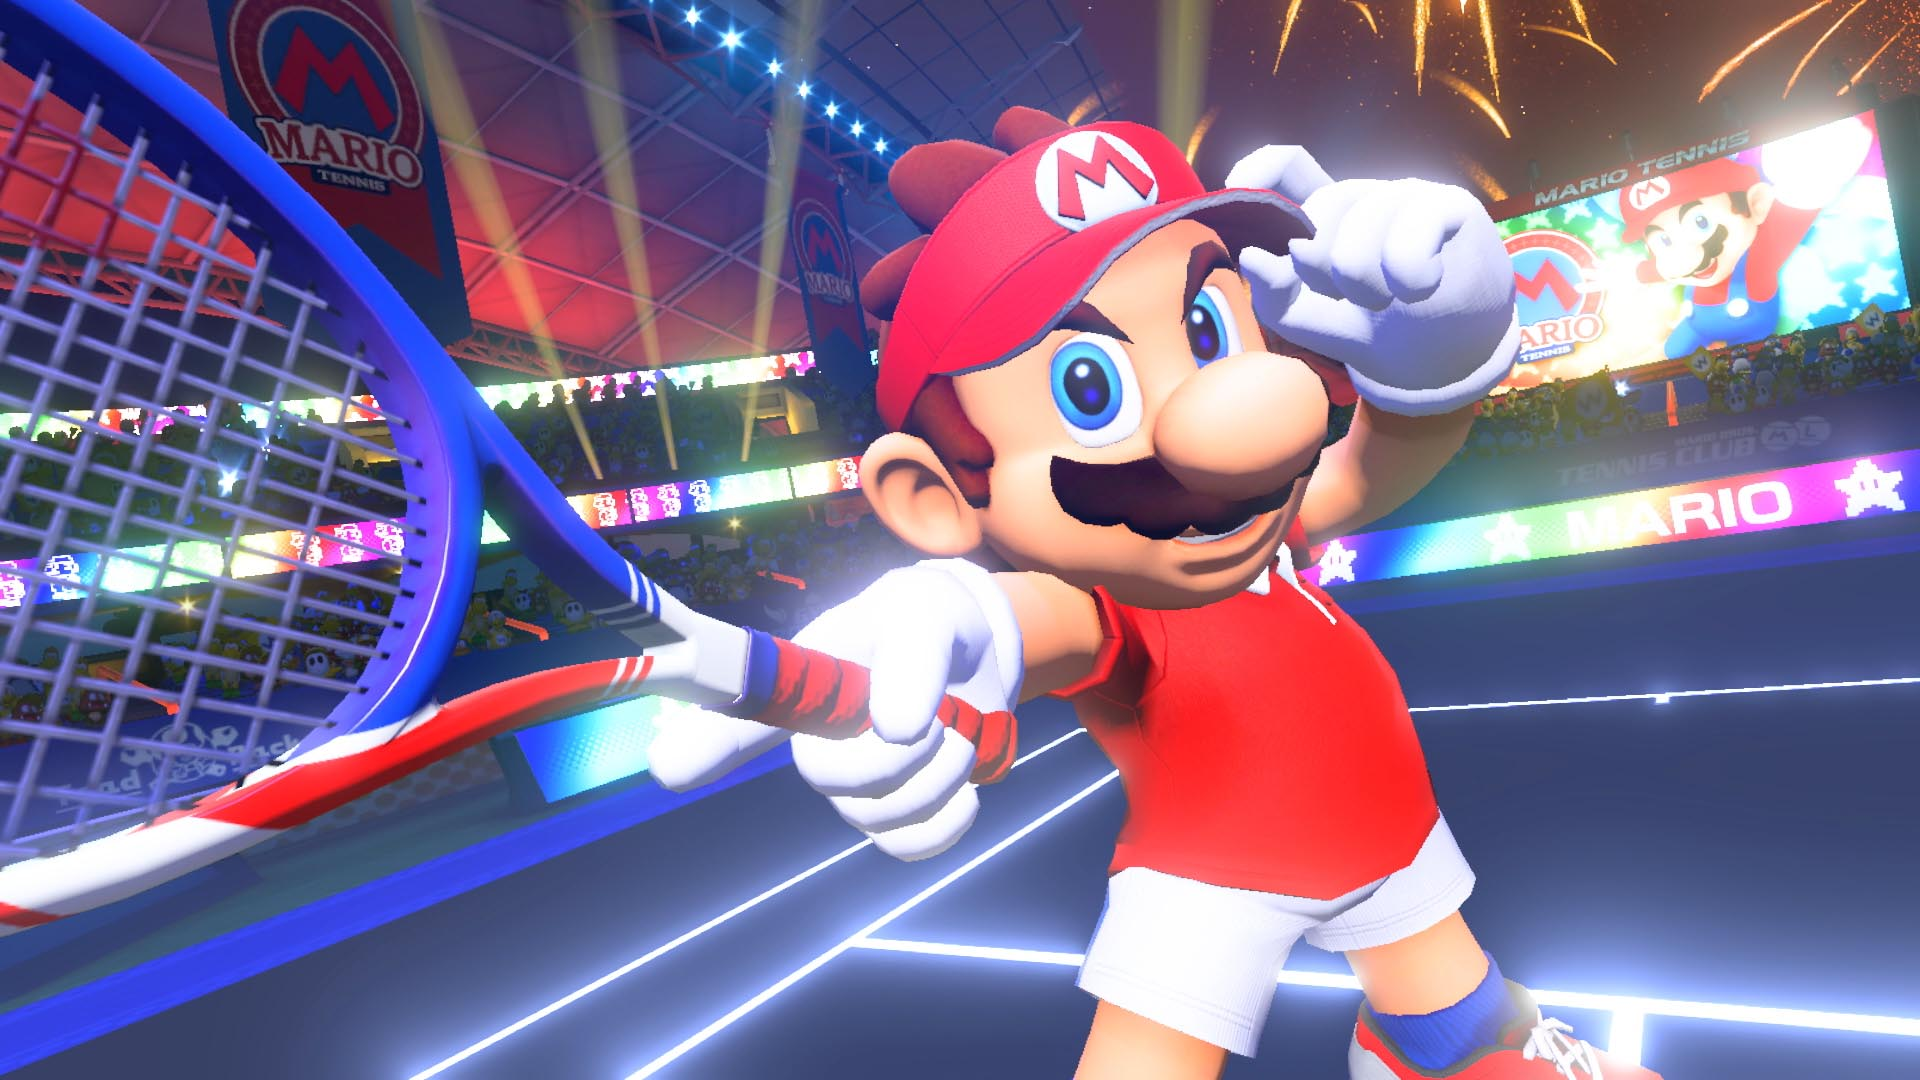 Opinion: Mario Tennis Aces should have been more like Golf Story